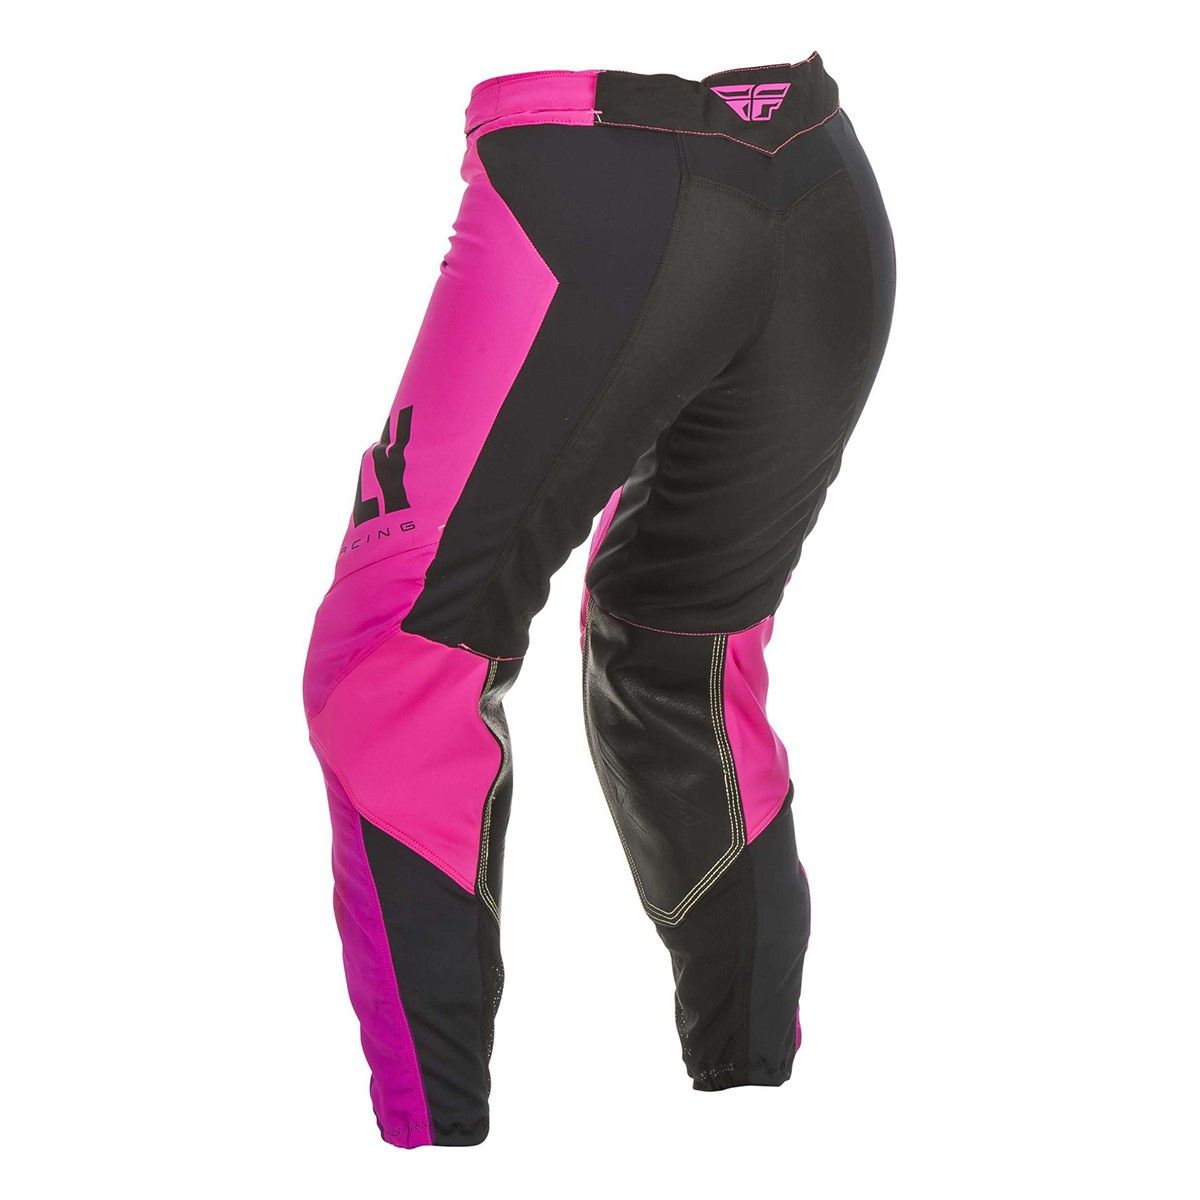 FLY WOMEN'S LITE 2019 PANTS